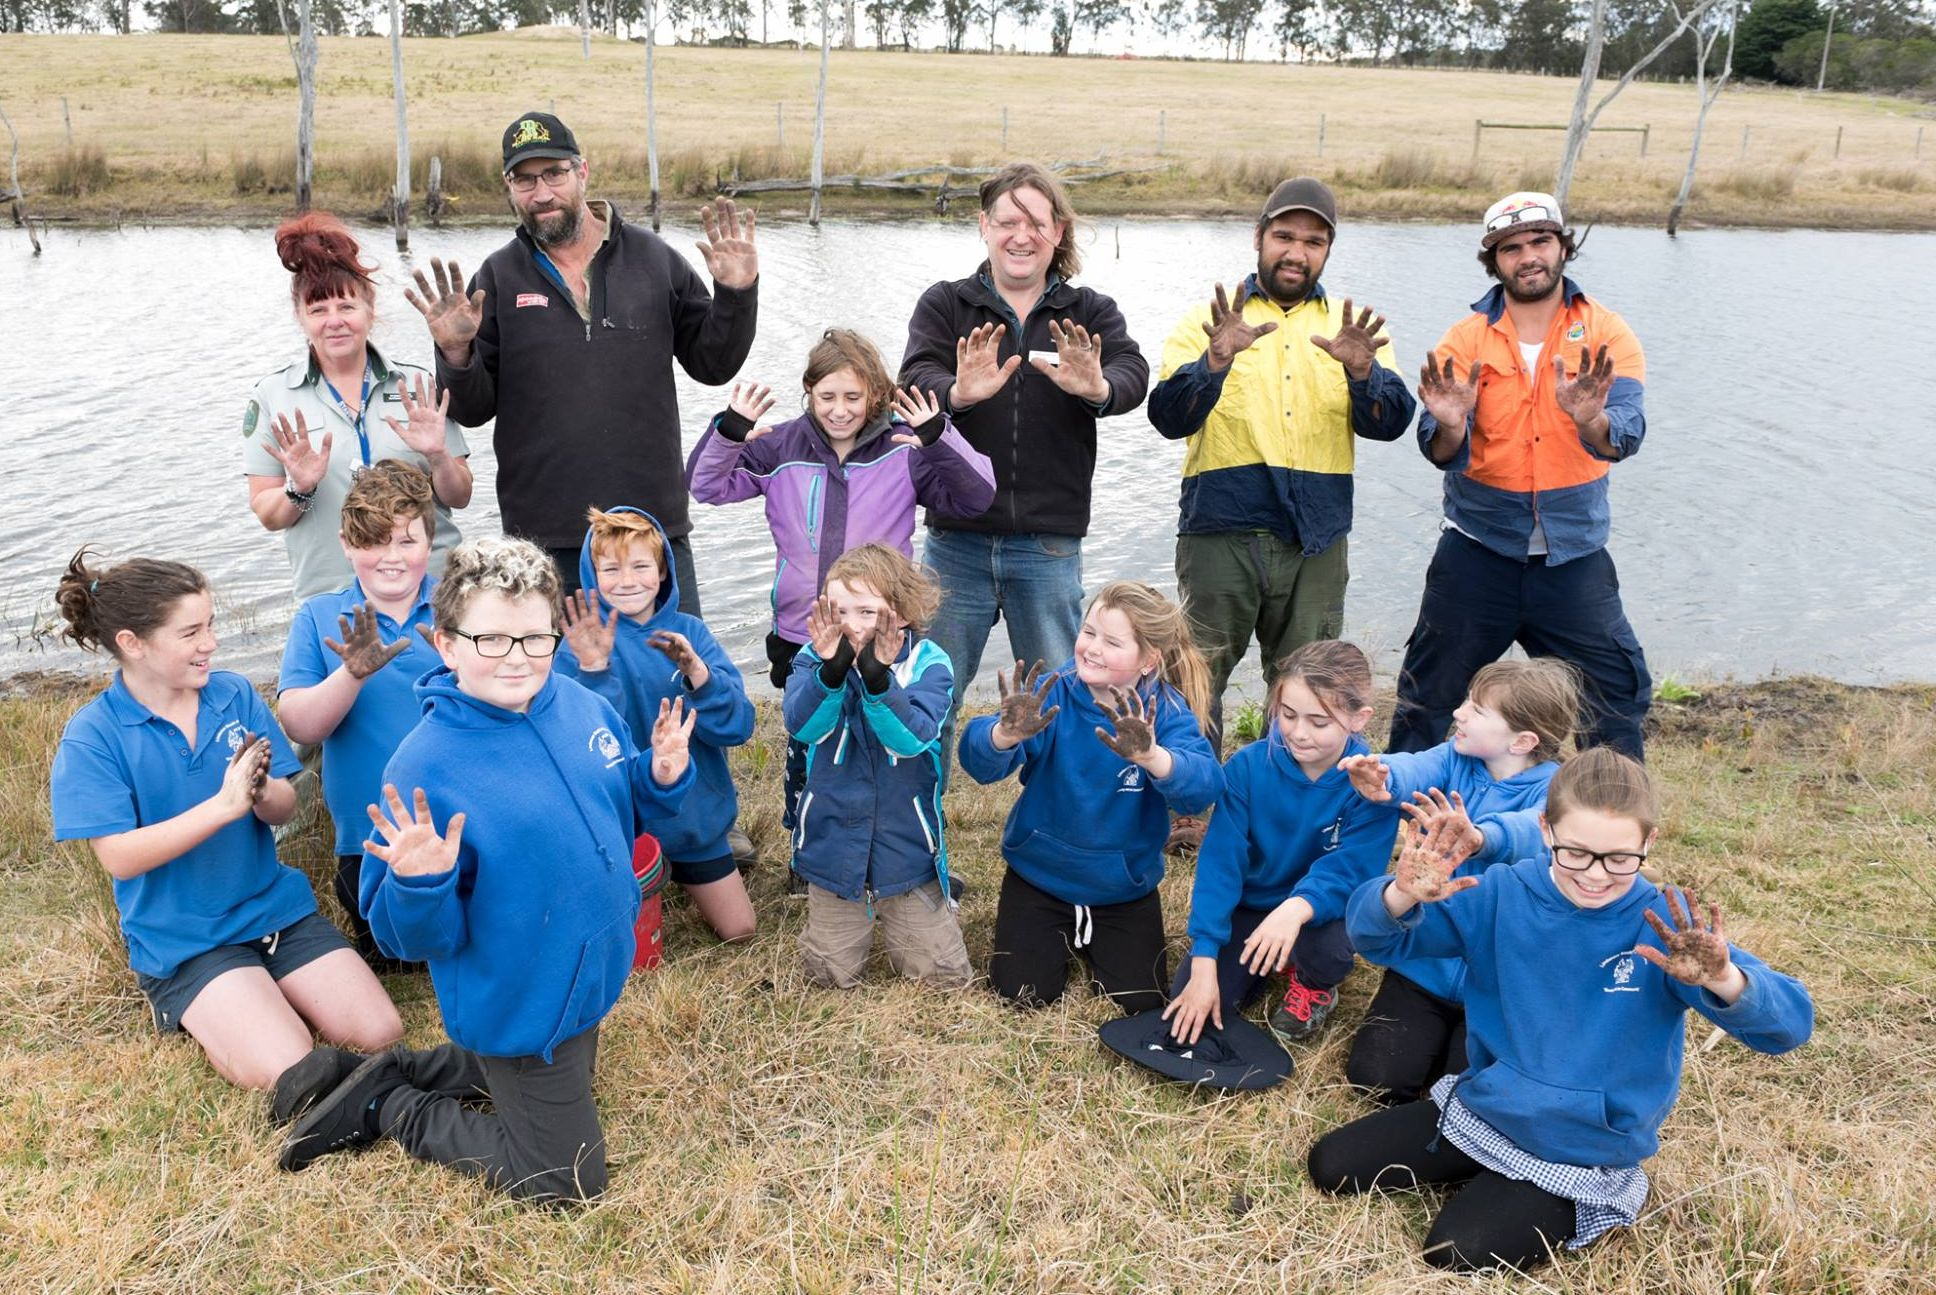 Students from Lindenow Primary School, Gunaikurnai Land and Water Aboriginal Corporation and Greening Australia show off their dirty hands after planting trees at Skull Creek